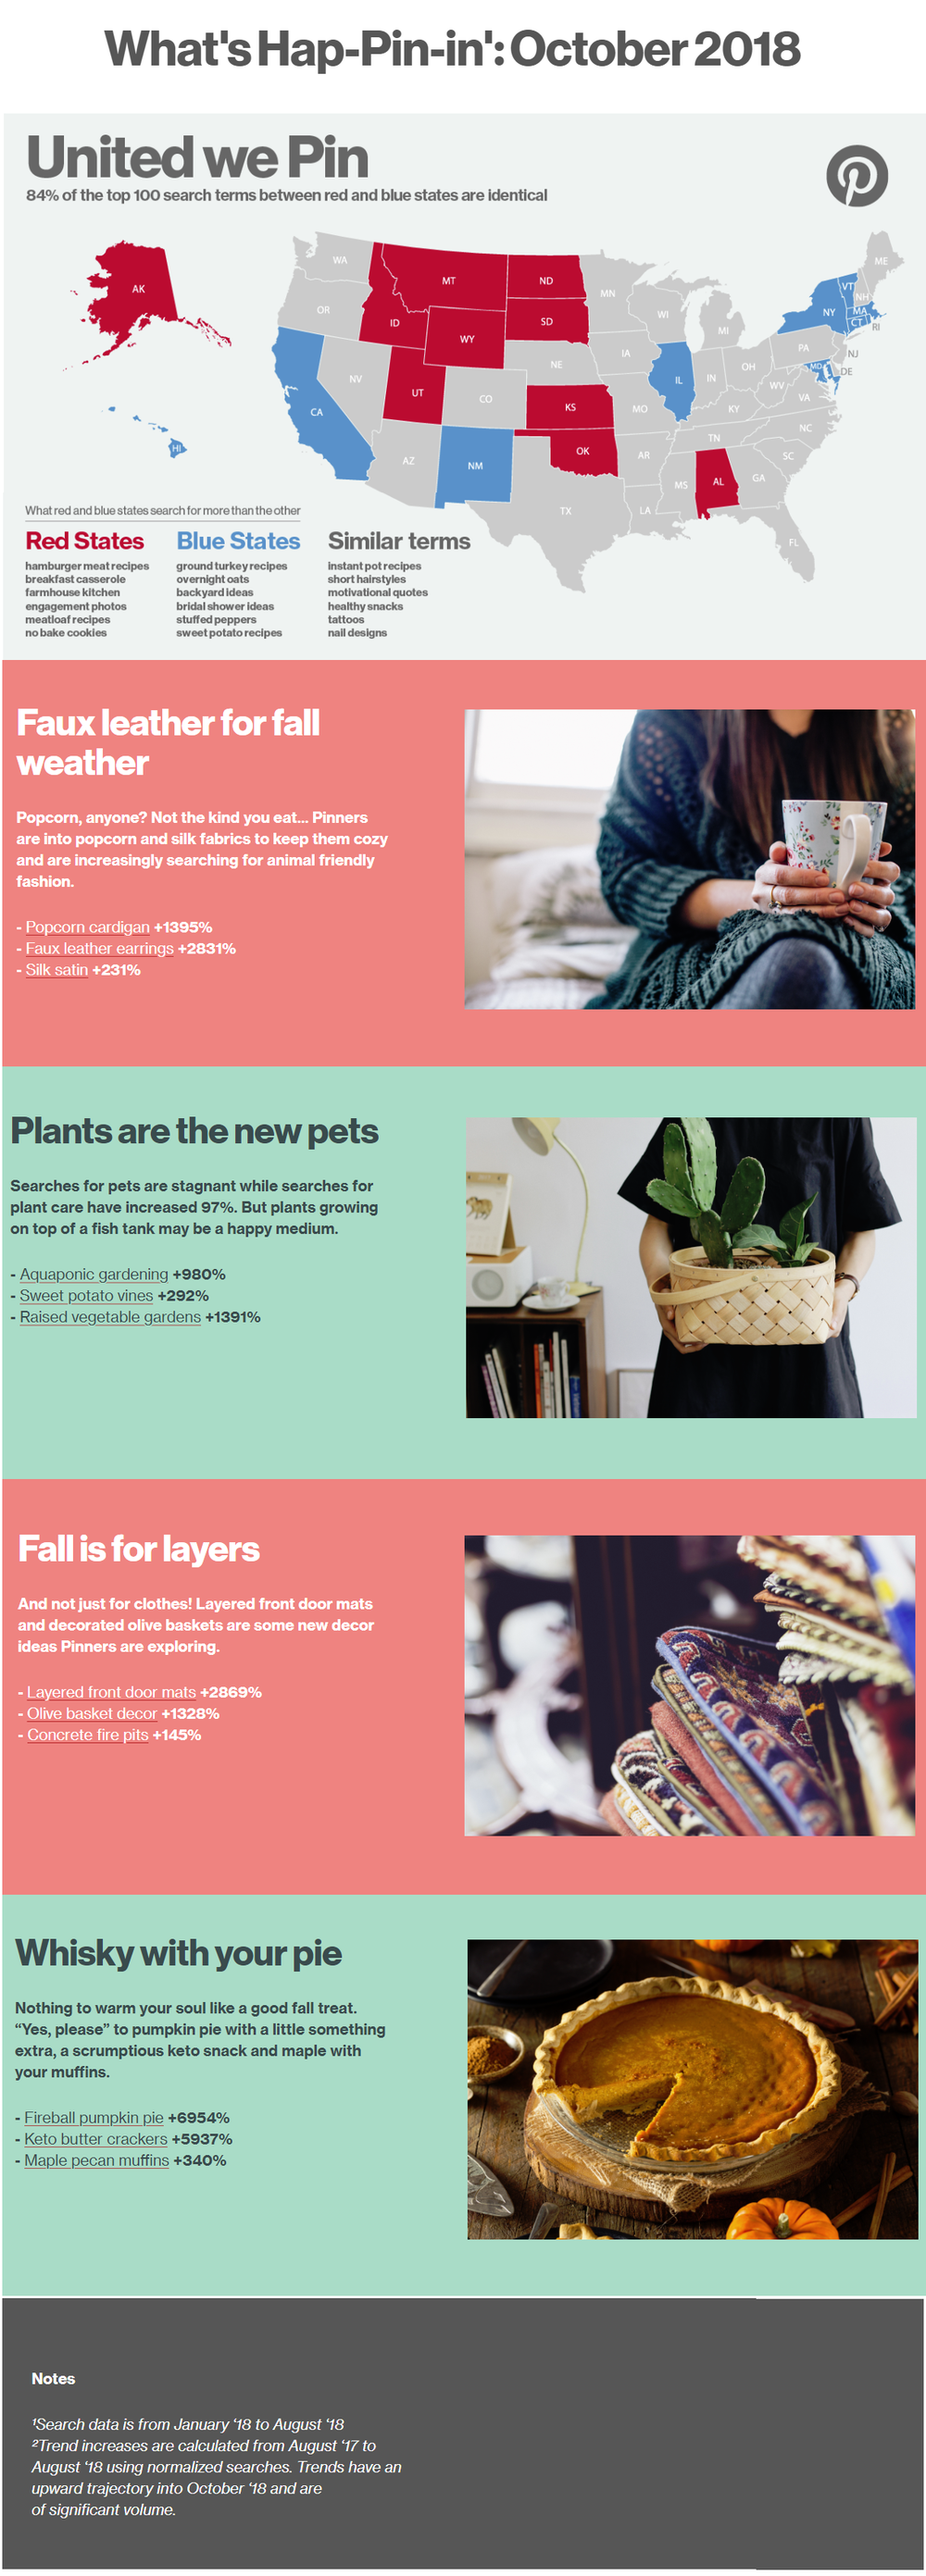 Pinterest Releases Insight into Key, Emerging Trends